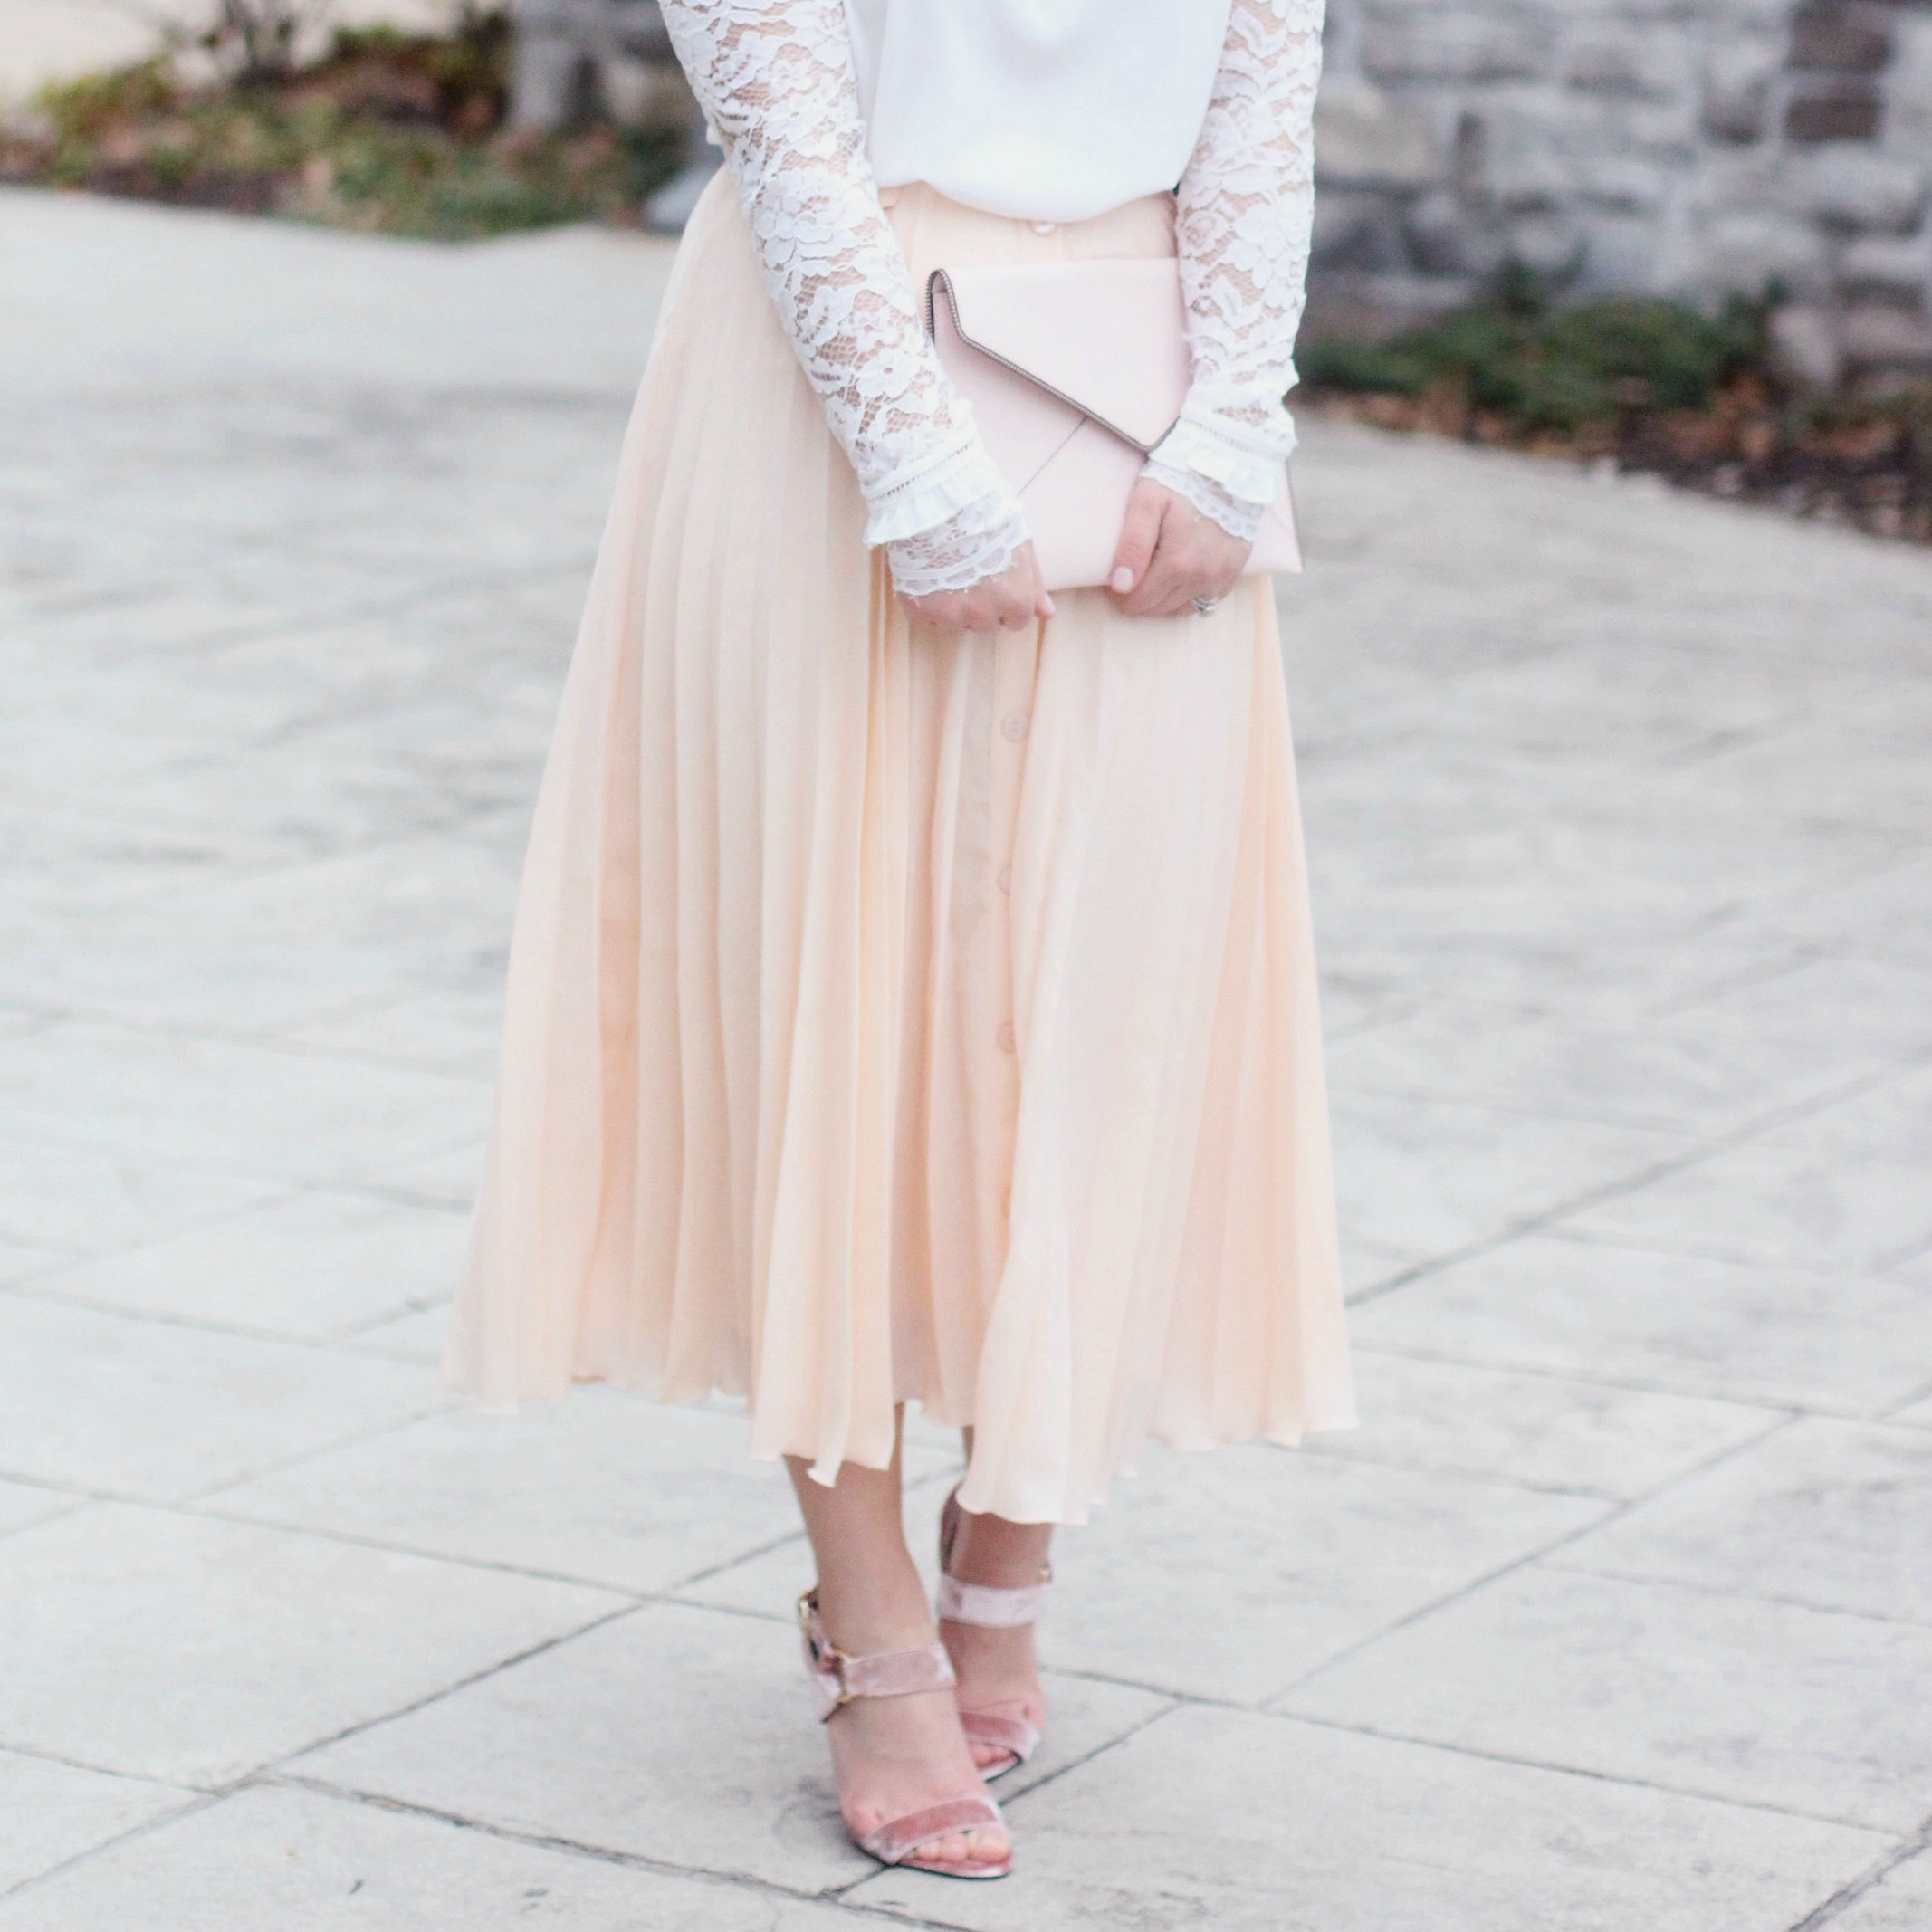 7a75ca7f342bd A Romantic Look: White Lace Top with a Pleated Midi Skirt - Zoe With ...